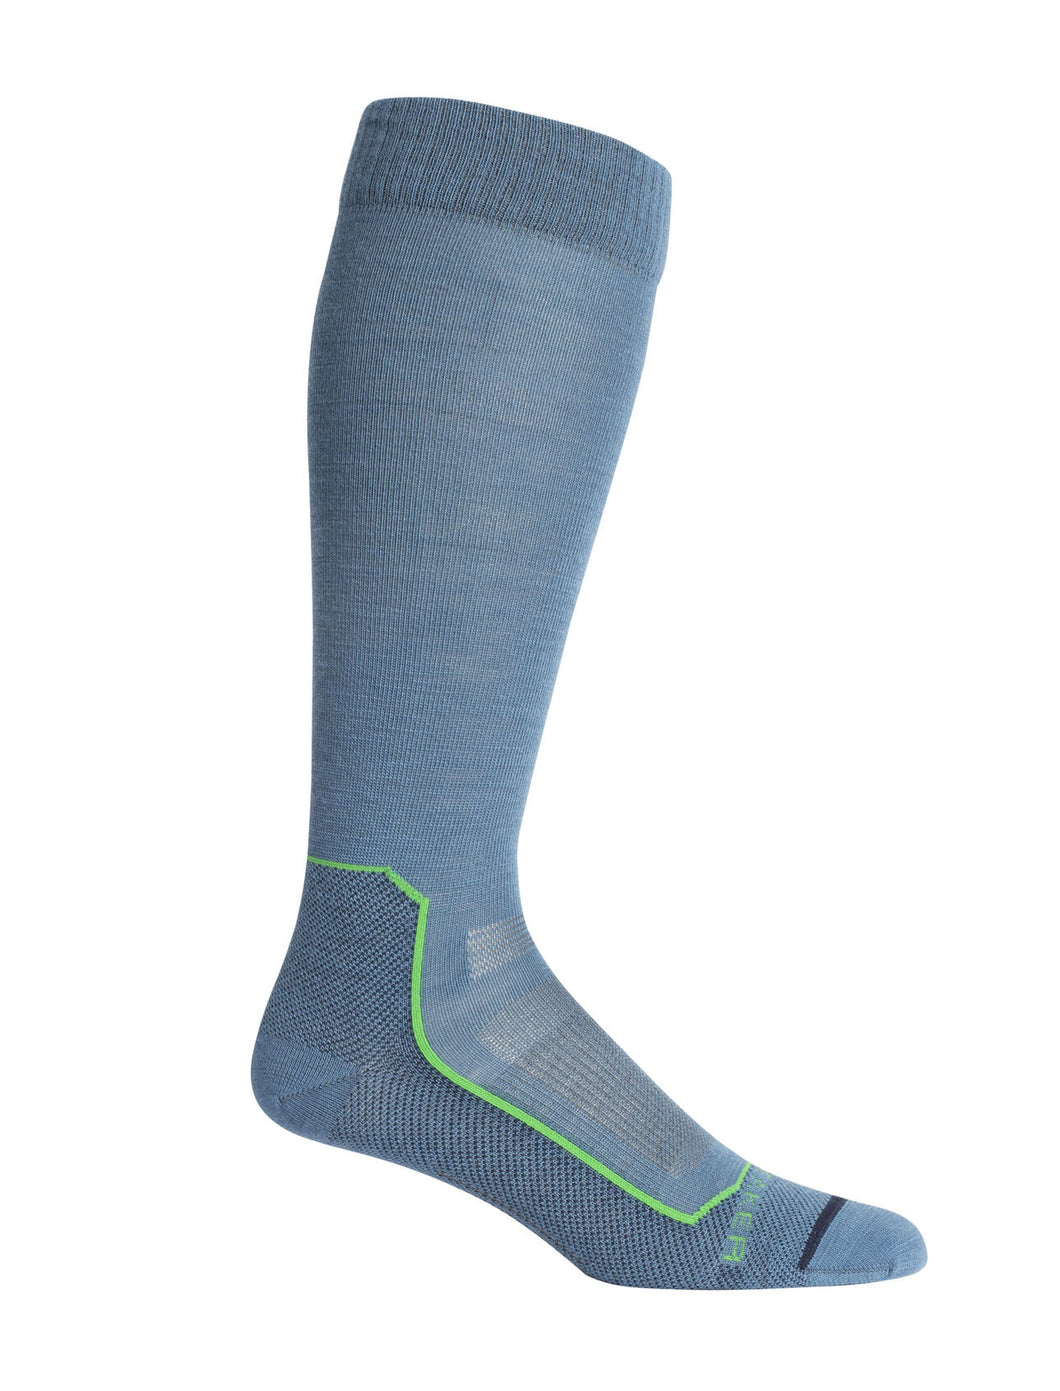 IB MENS SKI+ULTRALIGHT SOCK